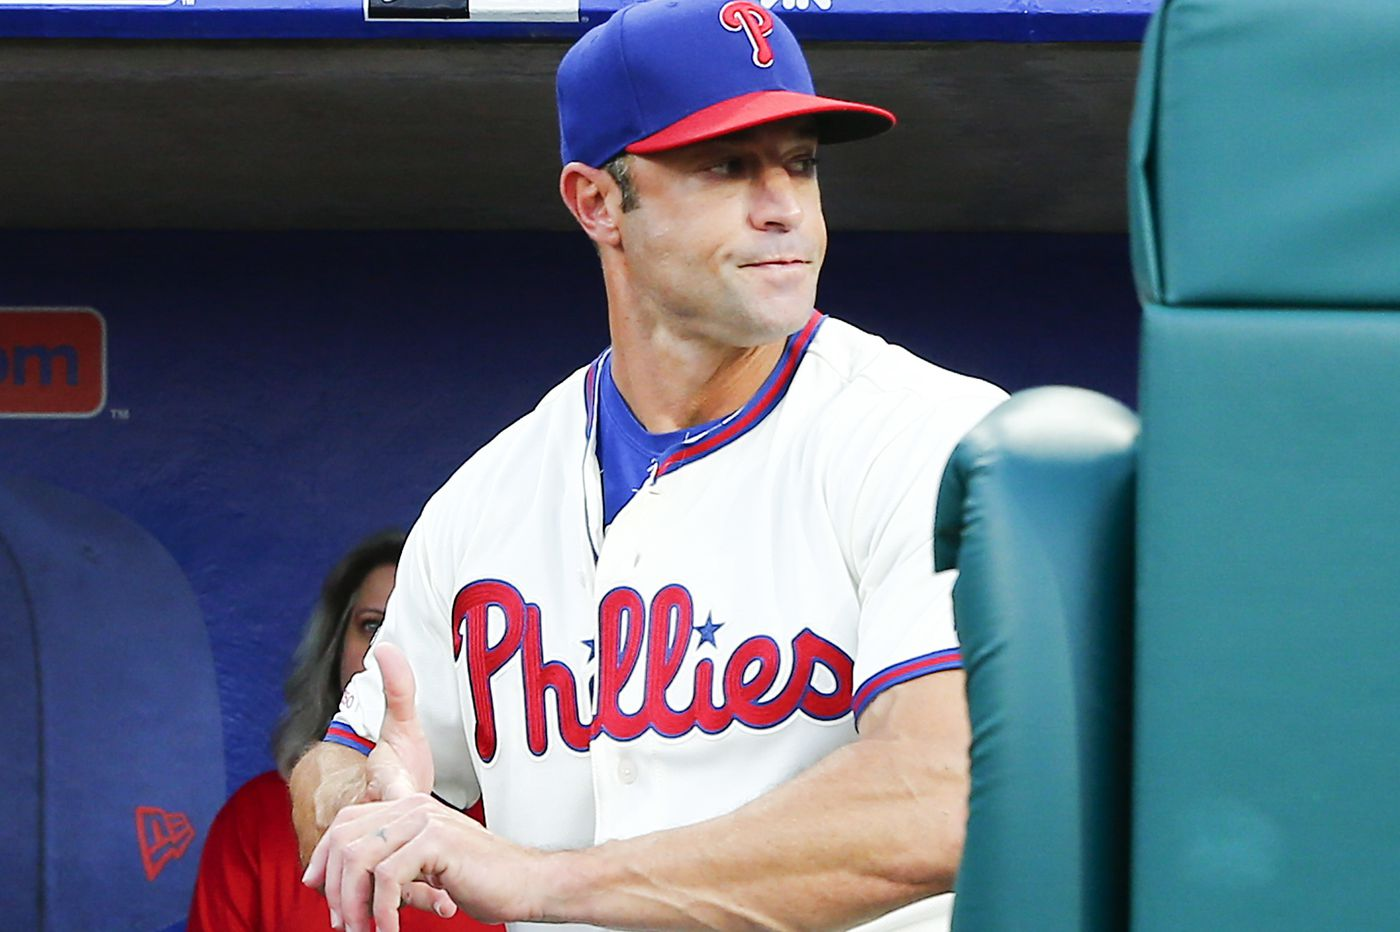 Phillies manager Gabe Kapler continues to await word on his fate. What might be taking so long?